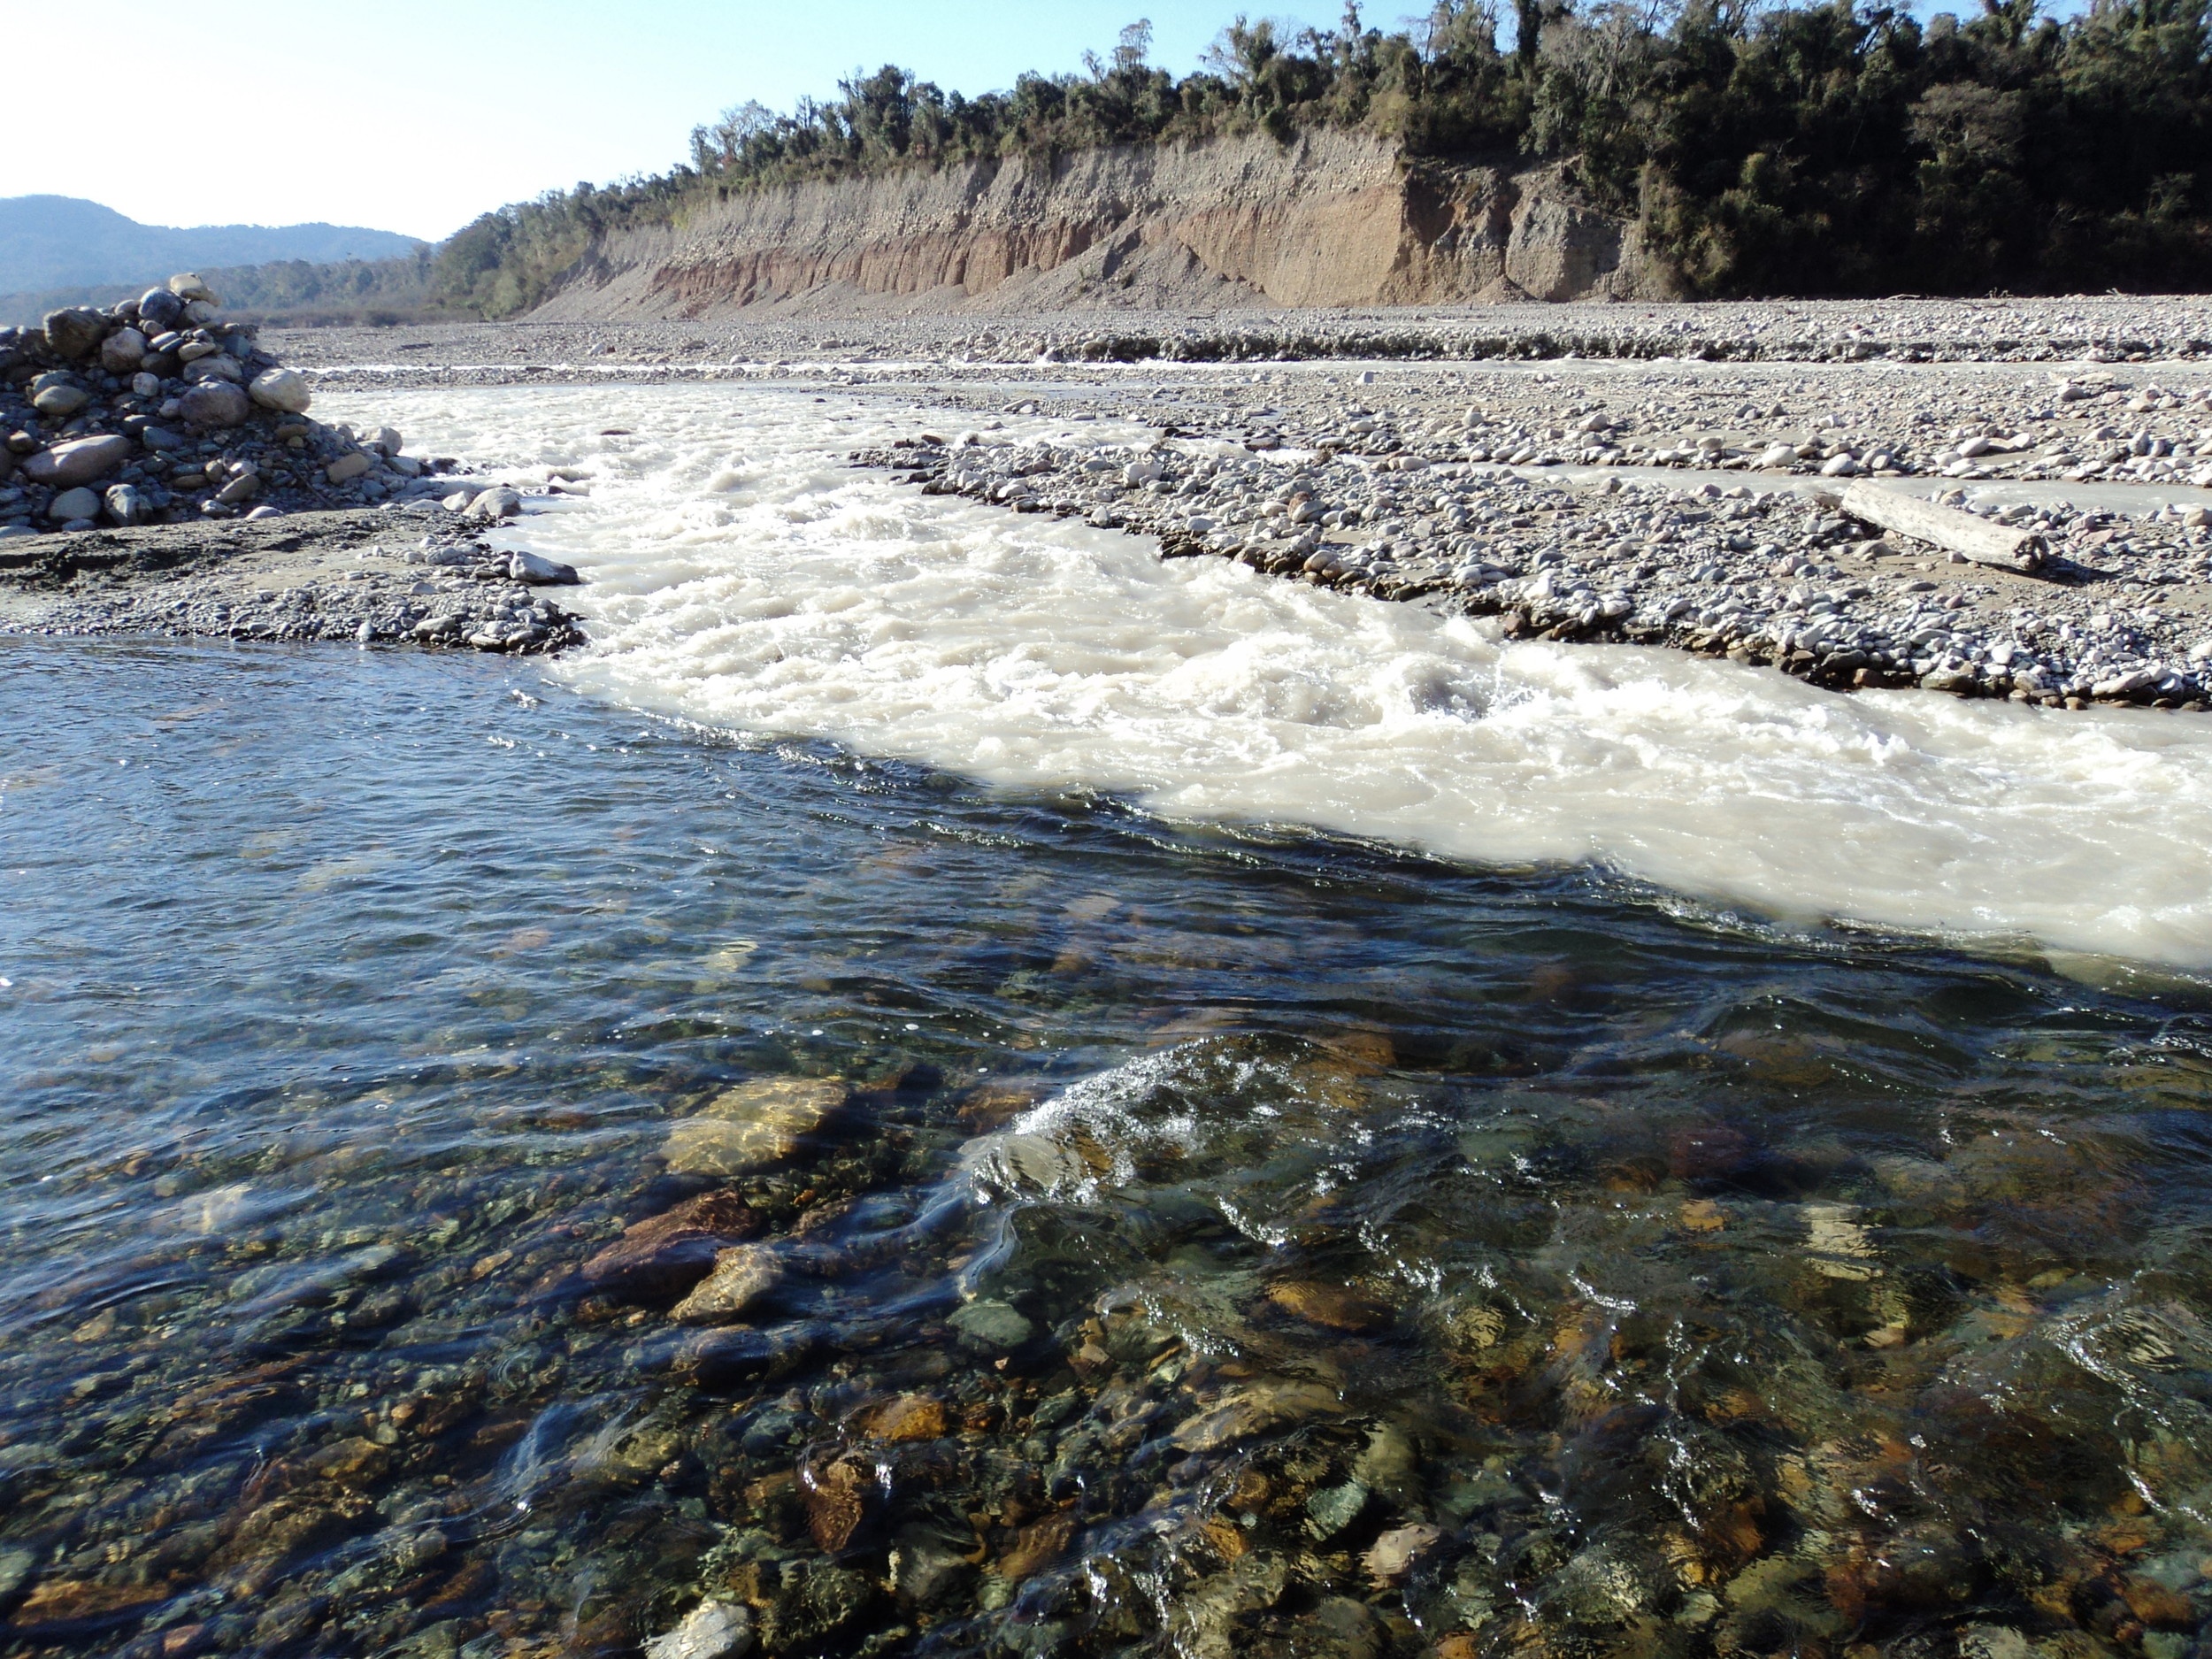 Silt-laden water comes together with clear water near the town of Isla de Cañas, Argentina (600 m elevation).